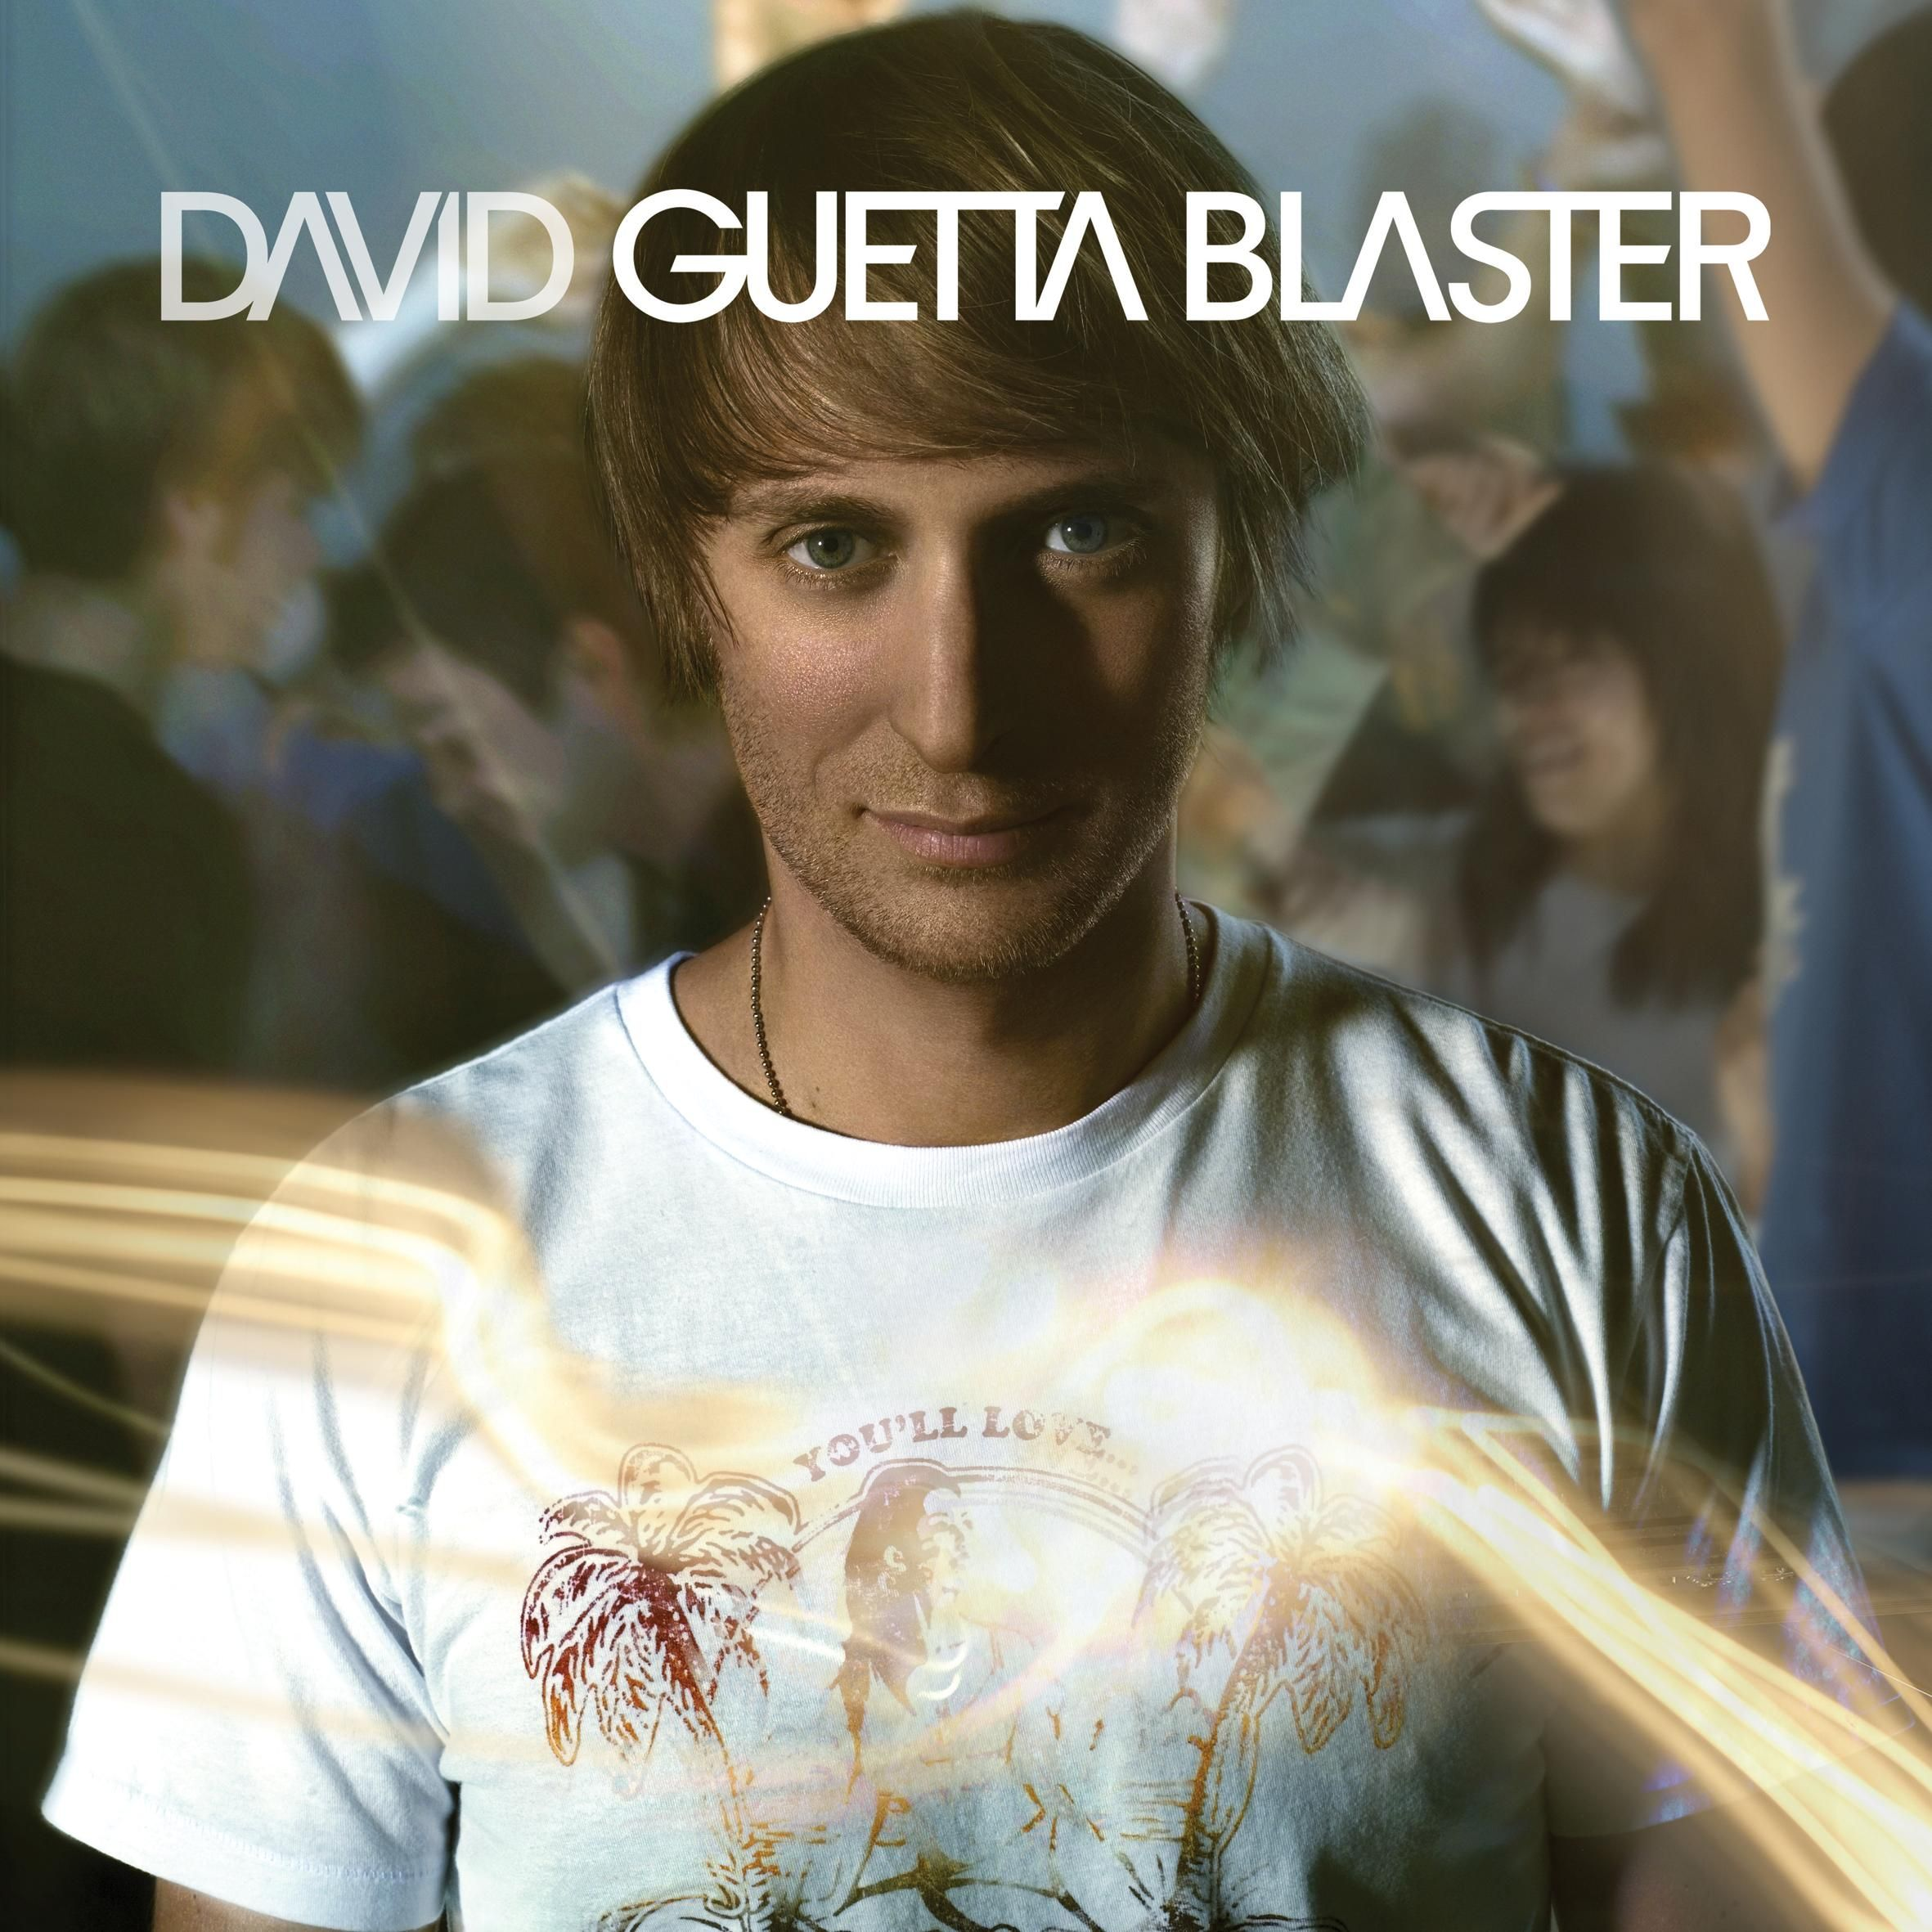 David Guetta - Guetta Blaster album cover